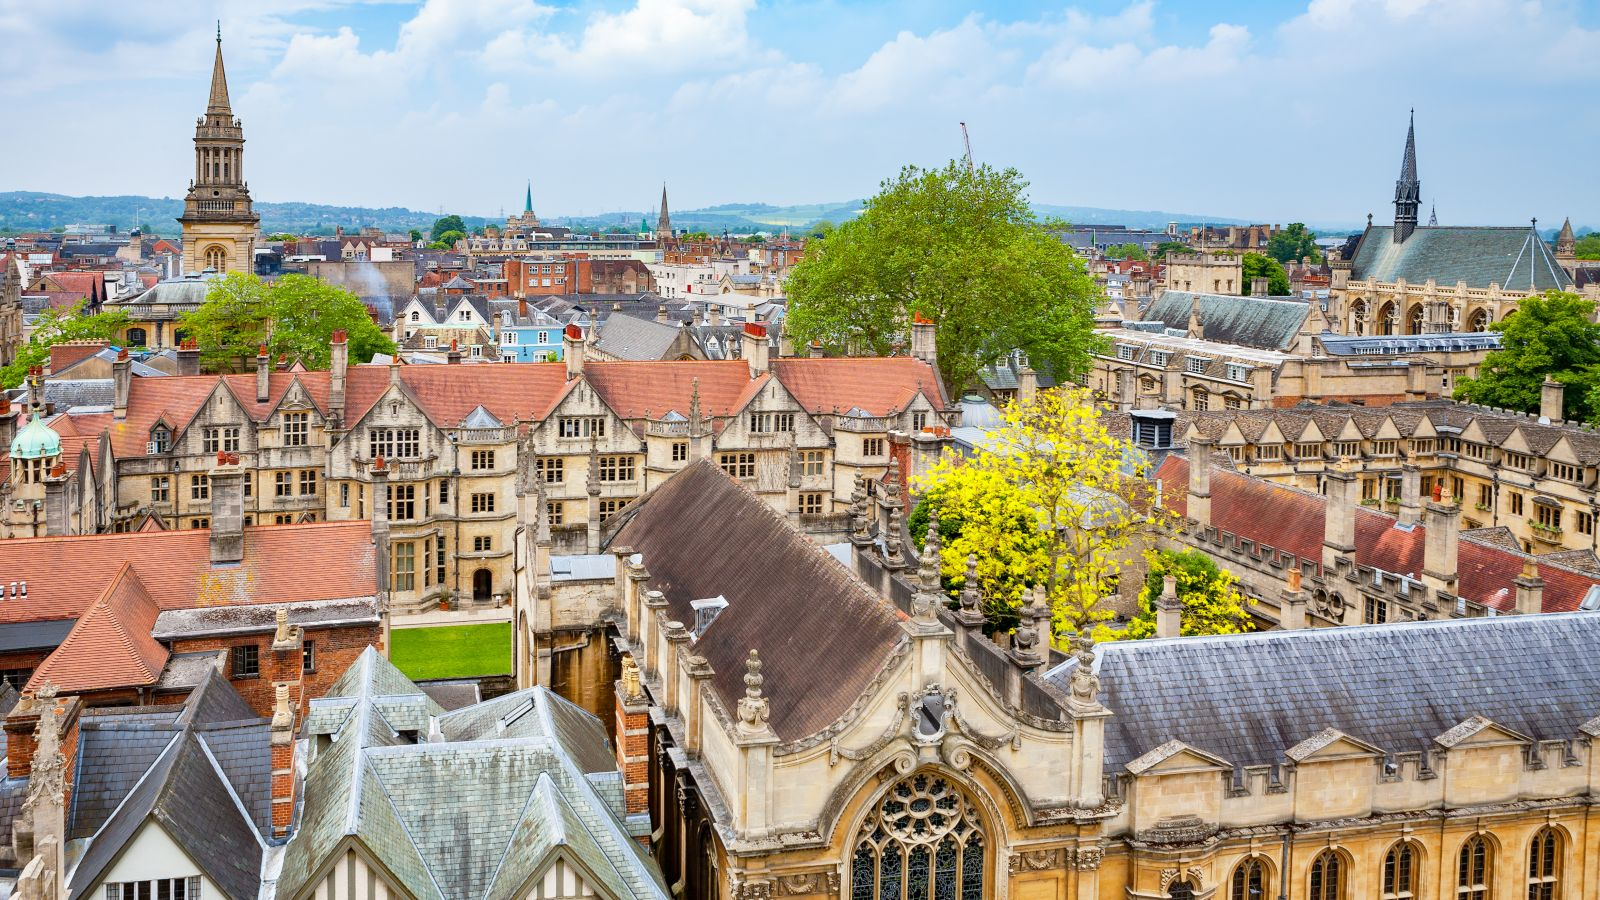 Cityscape of Oxford